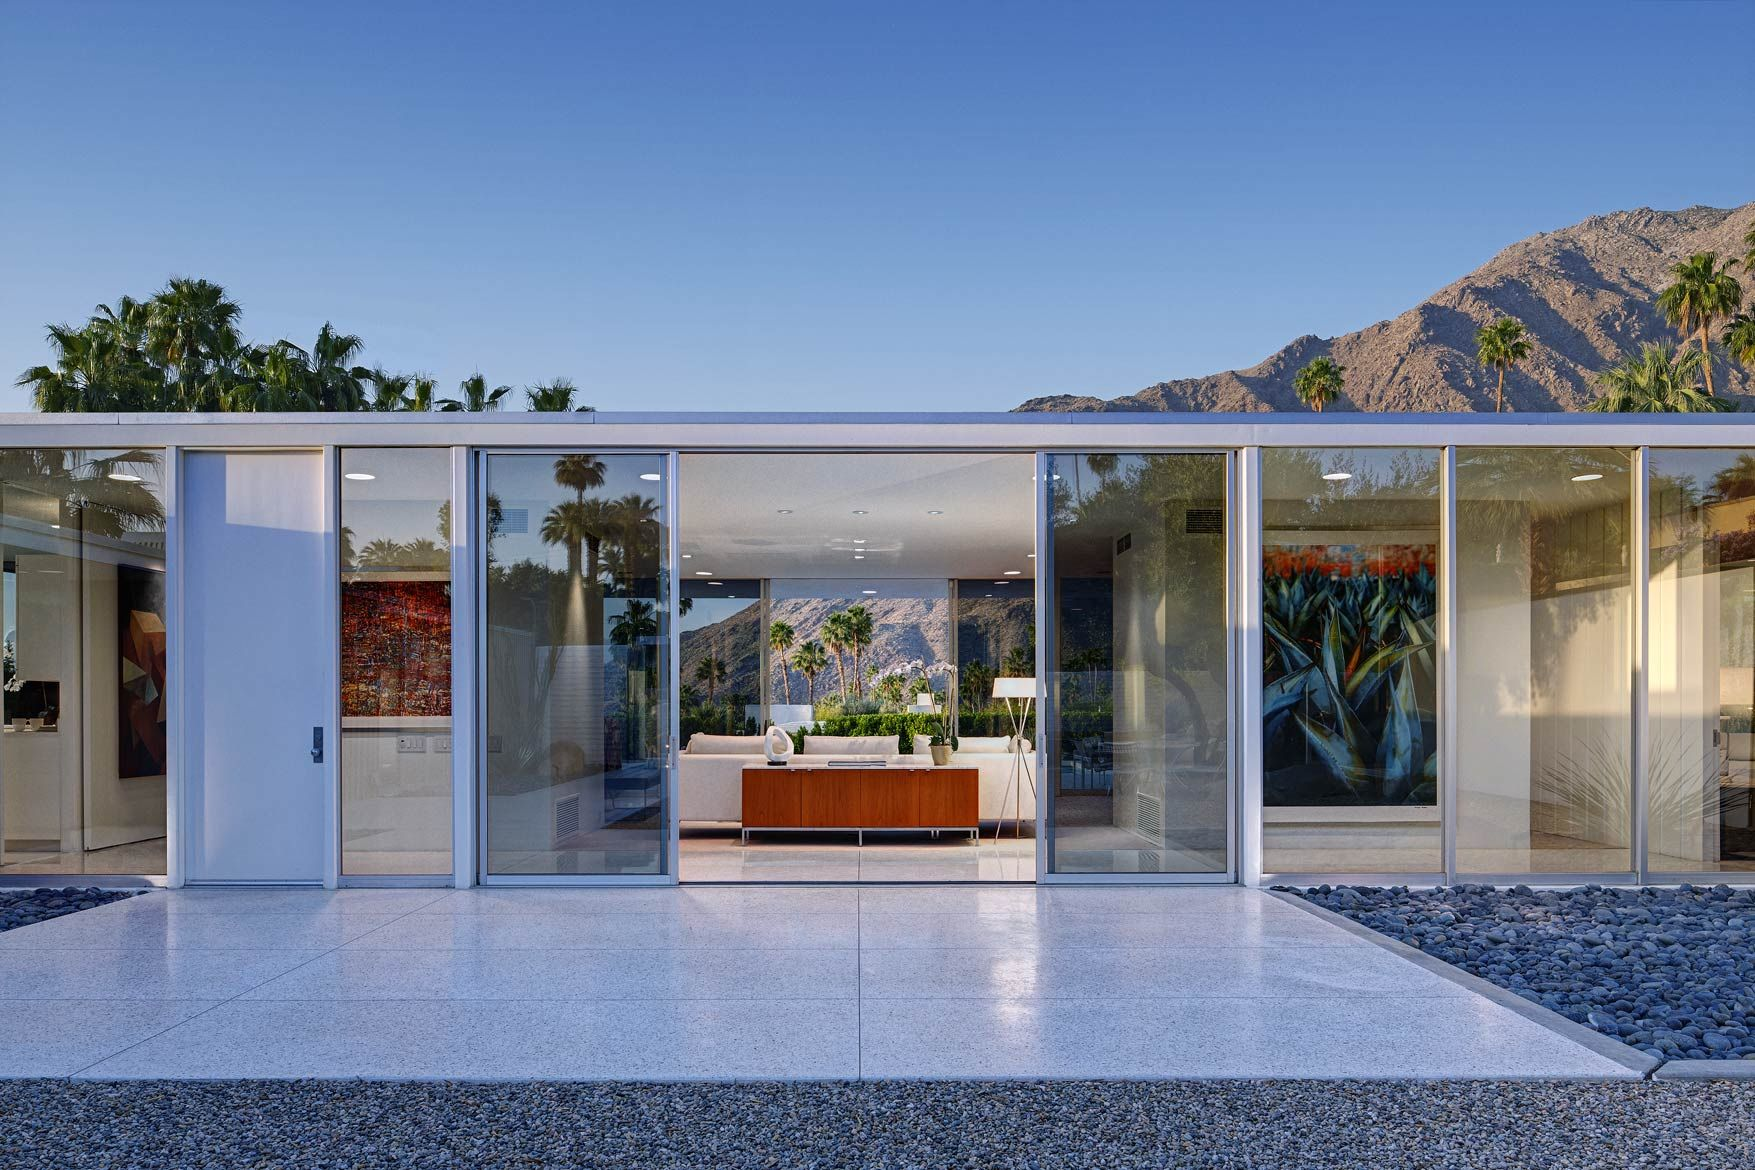 Palm Springs Glass House by William Cody | Inspiring Contemporary ...